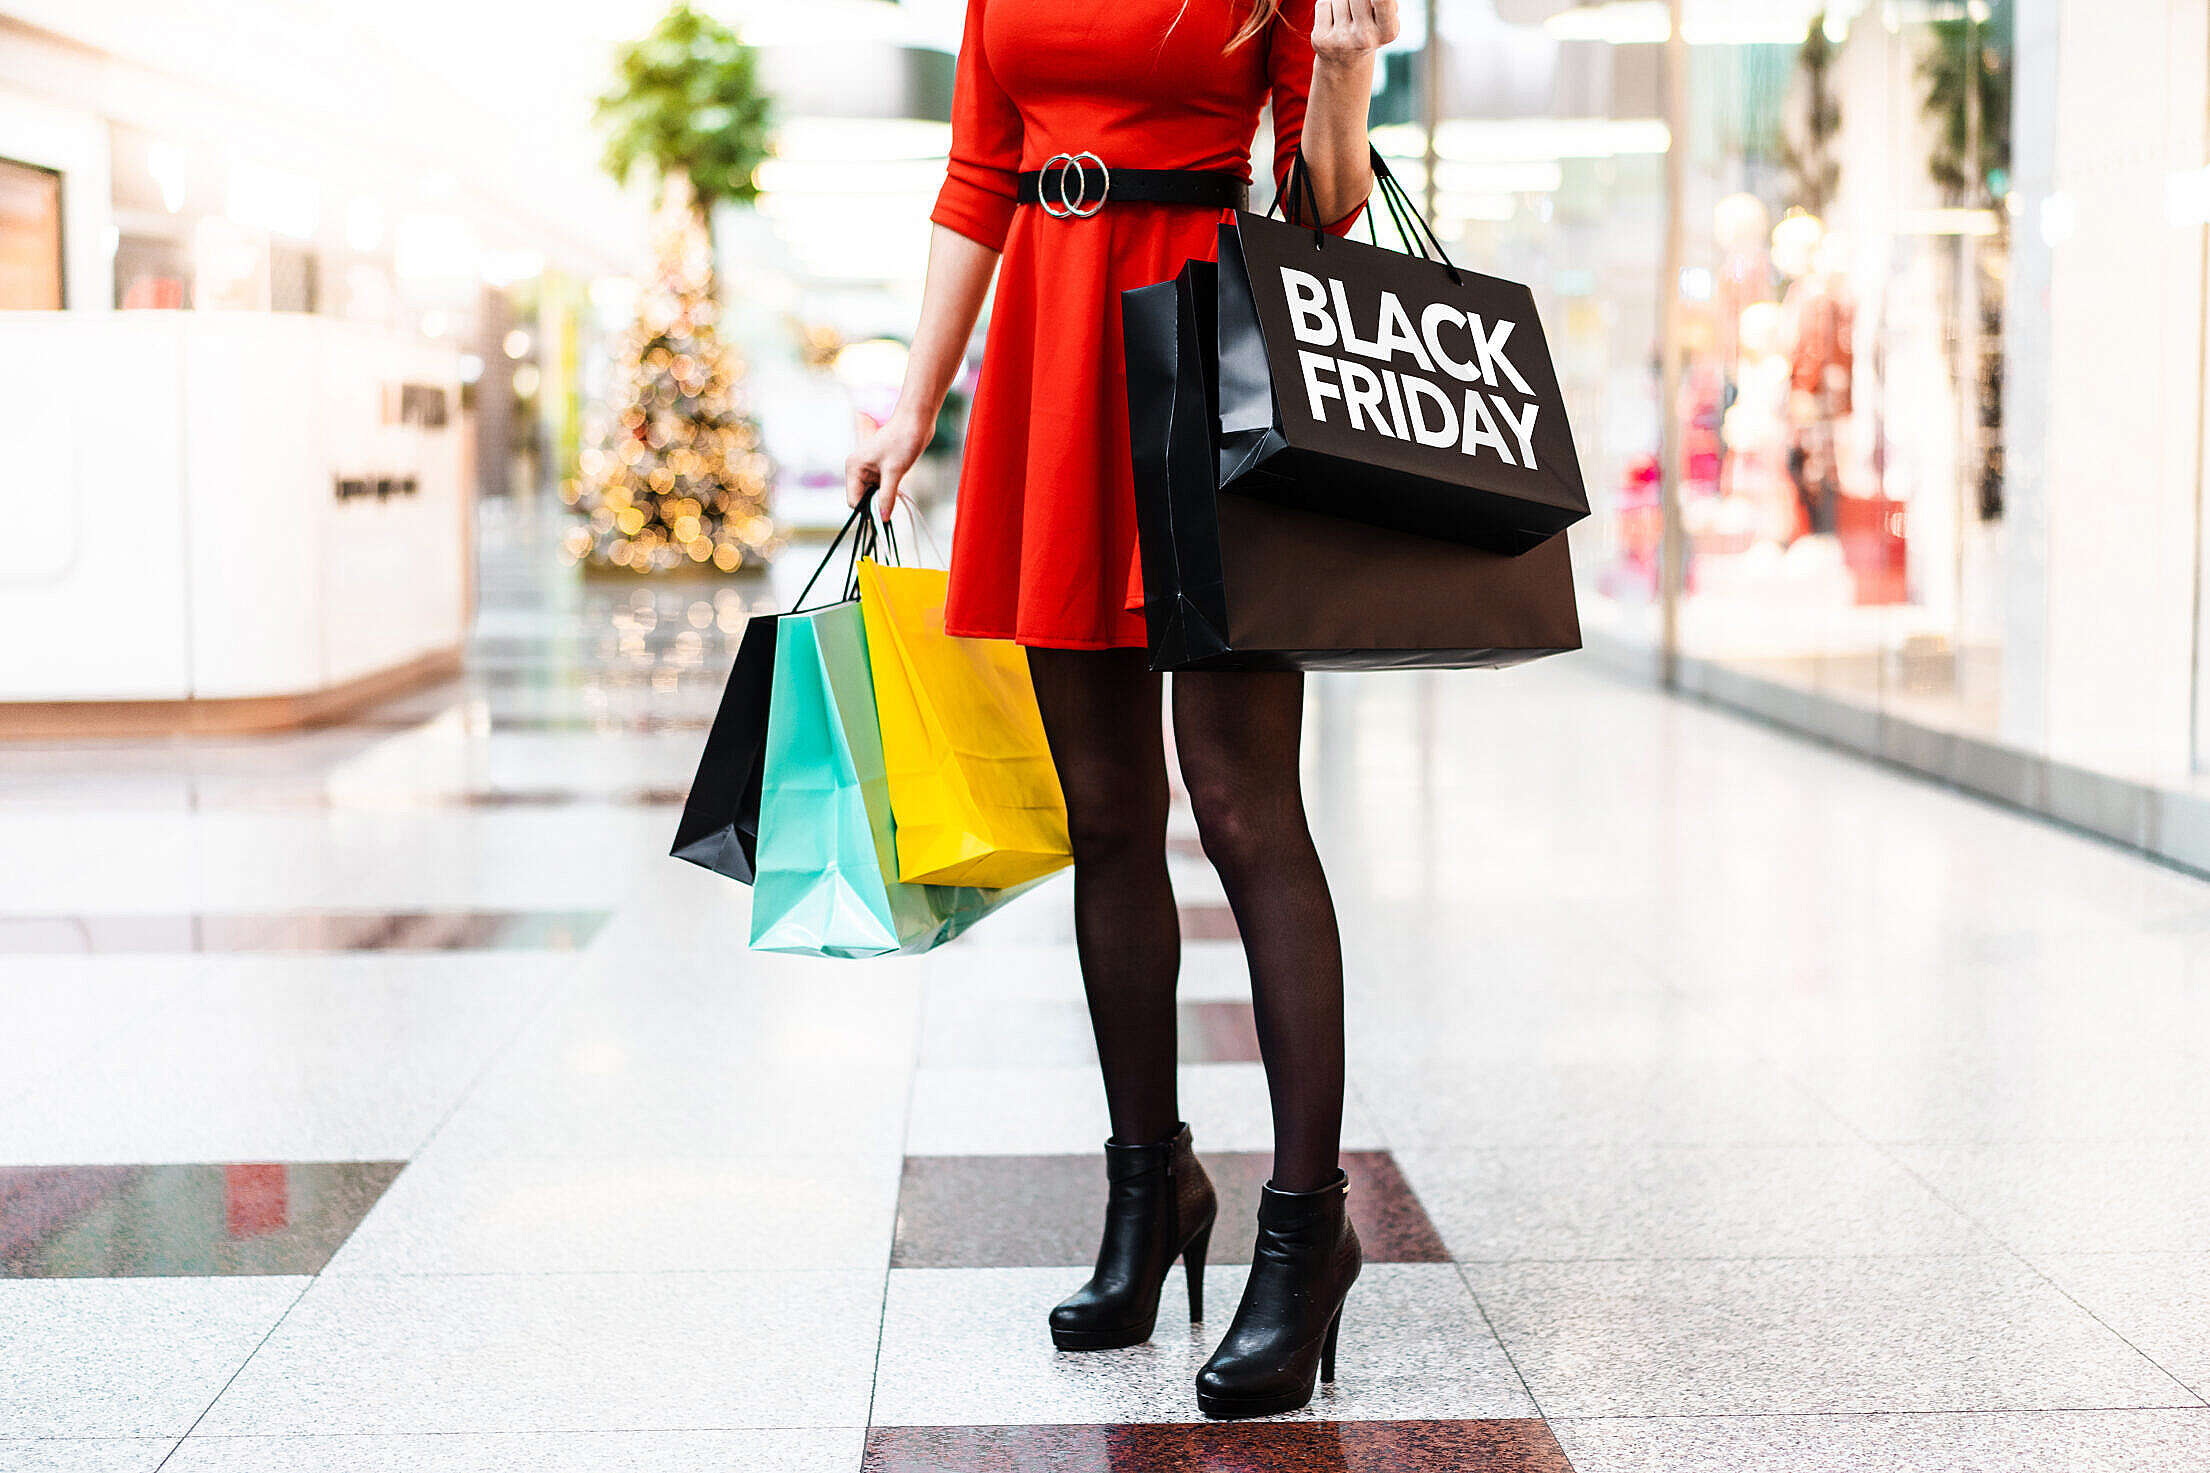 Shopaholic Woman with BLACK FRIDAY Shopping Bags Free Stock Photo